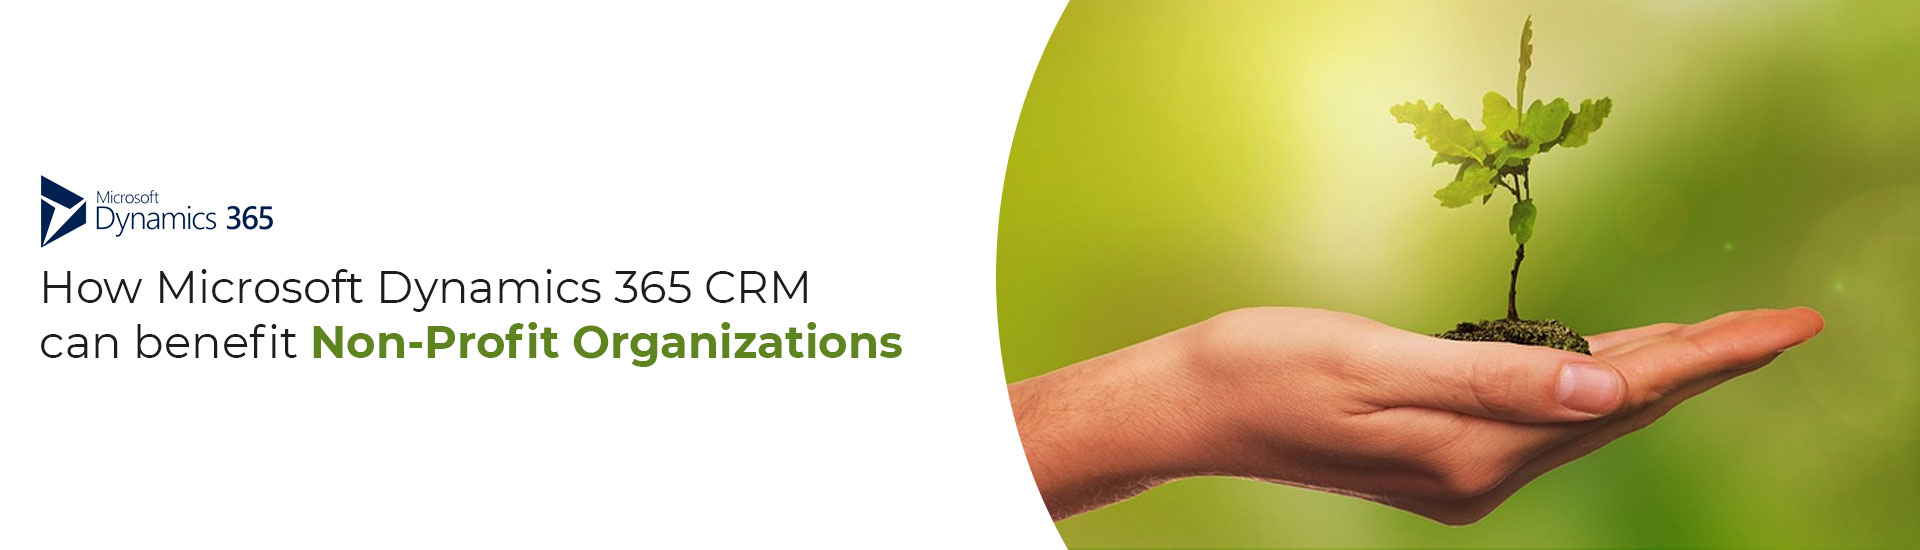 How Microsoft Dynamics 365 CRM can benefit Non-Profit Organizations